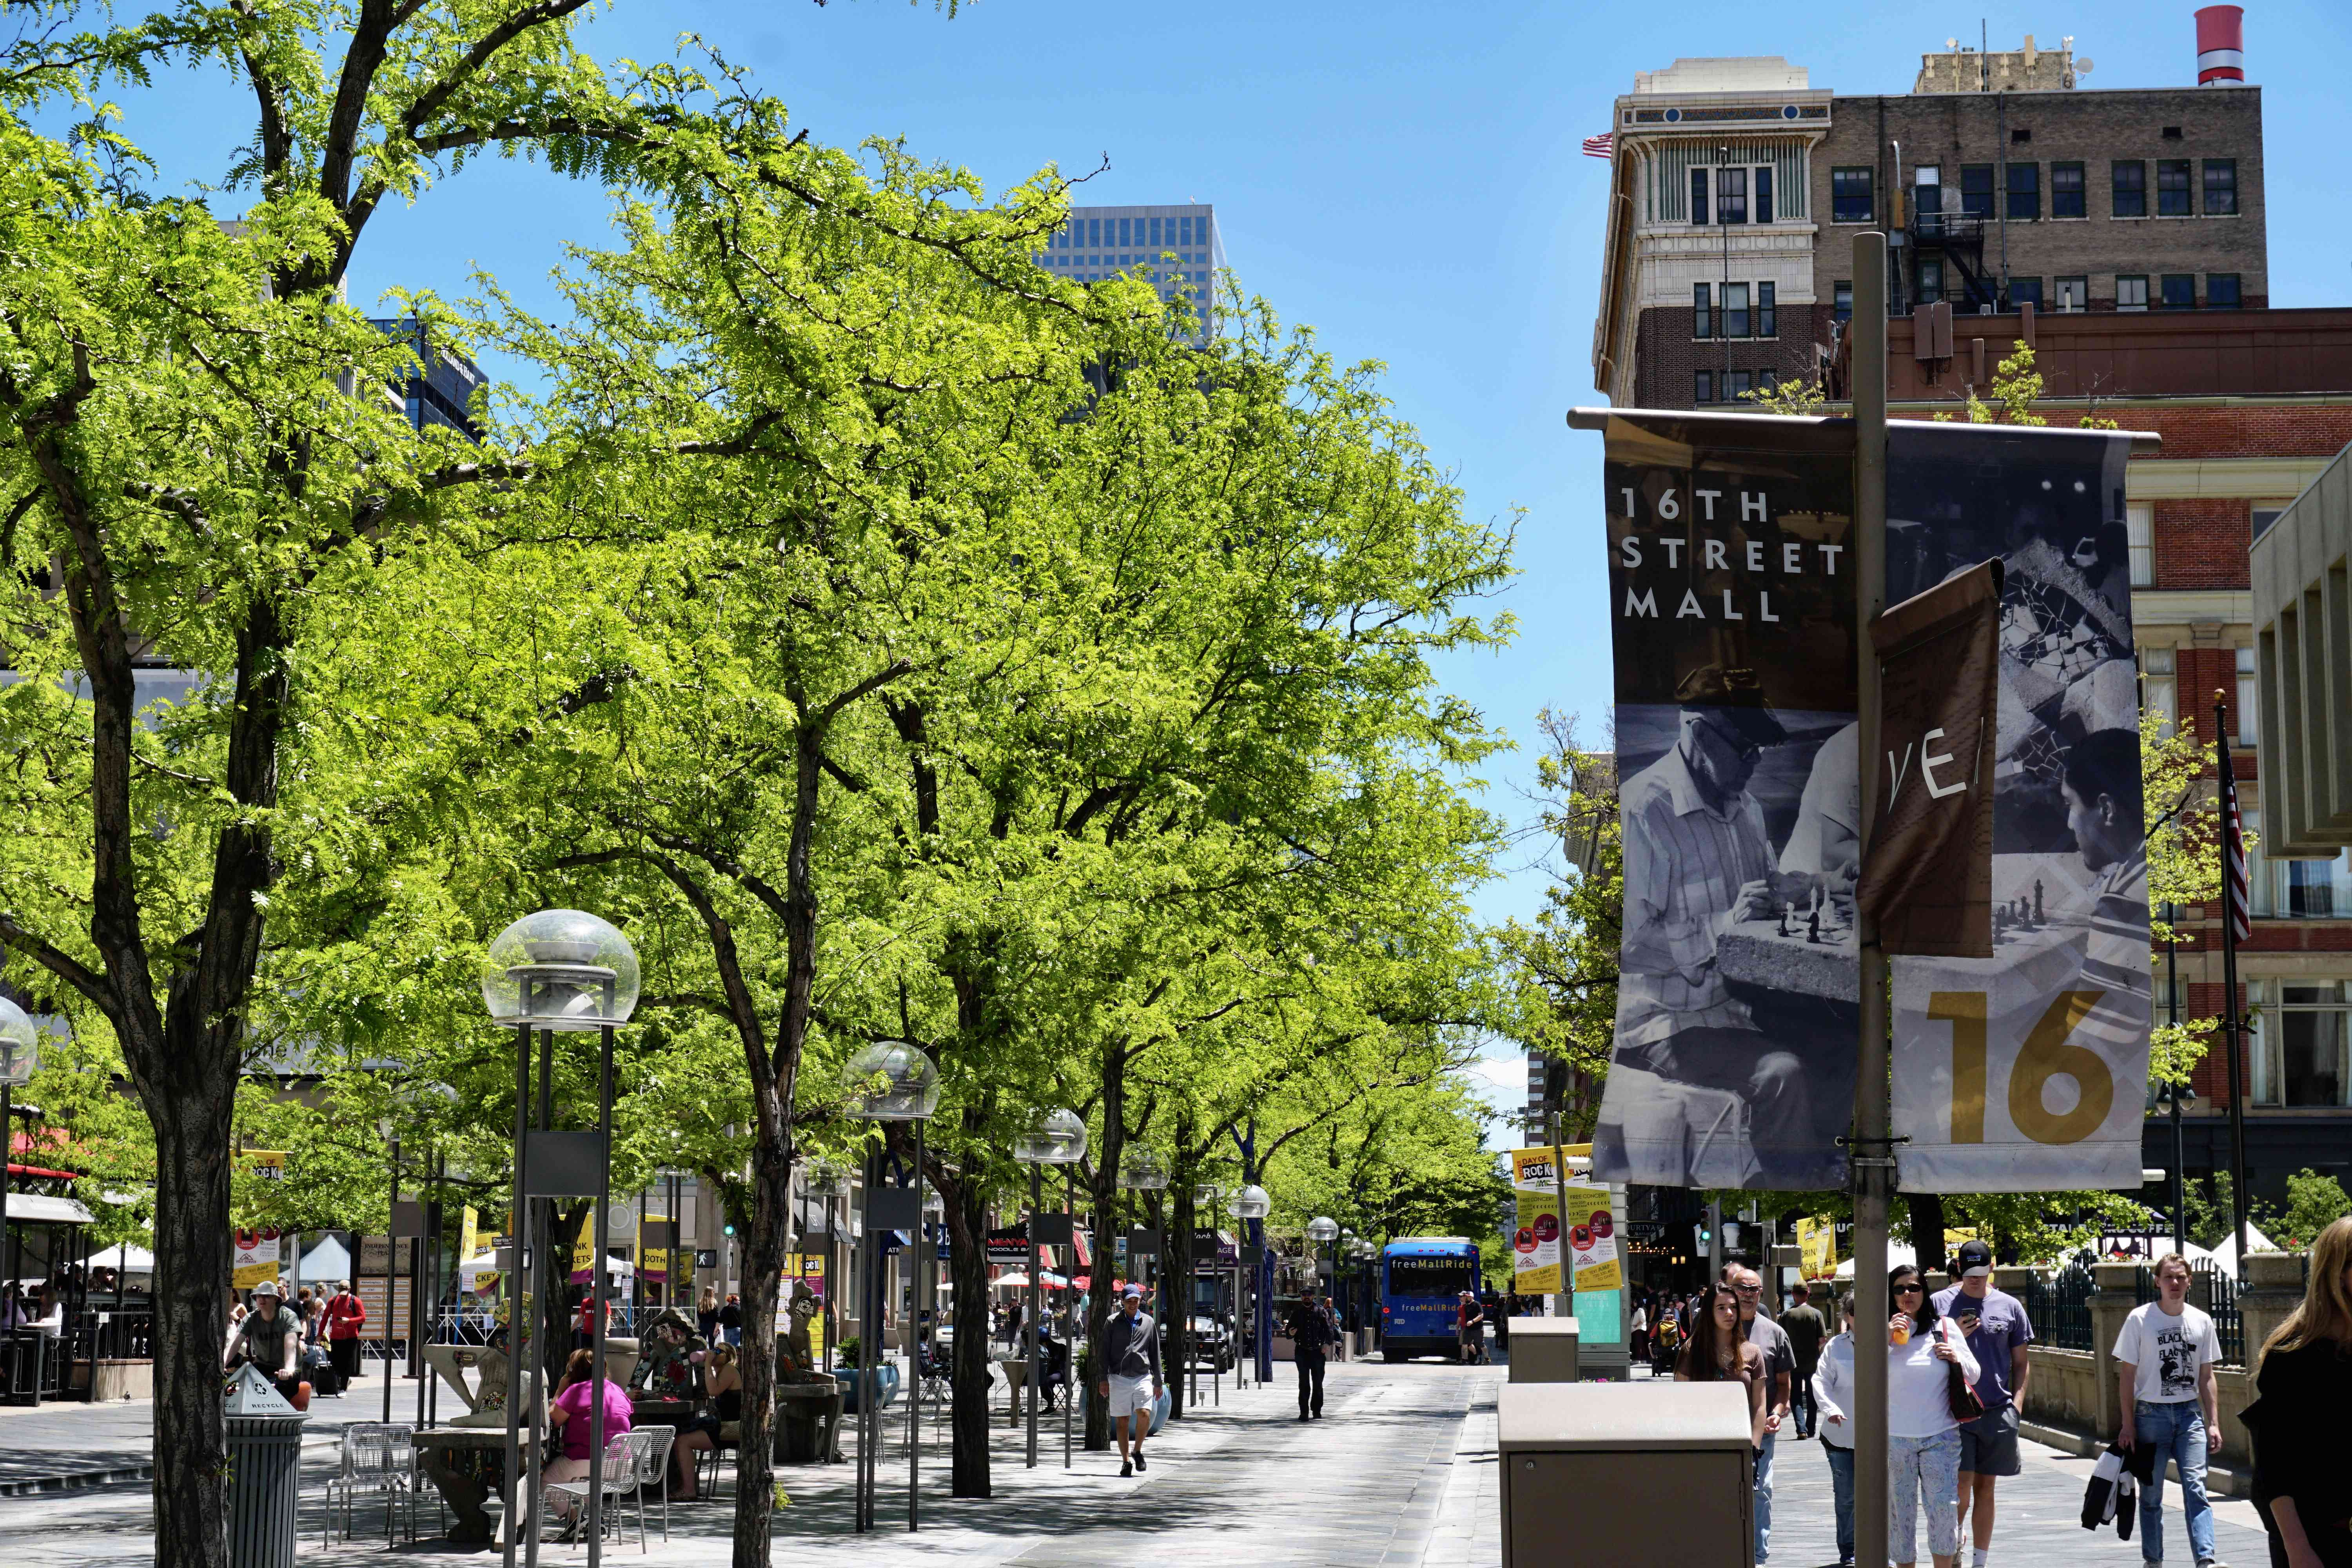 The 16th Street Mall in Denver